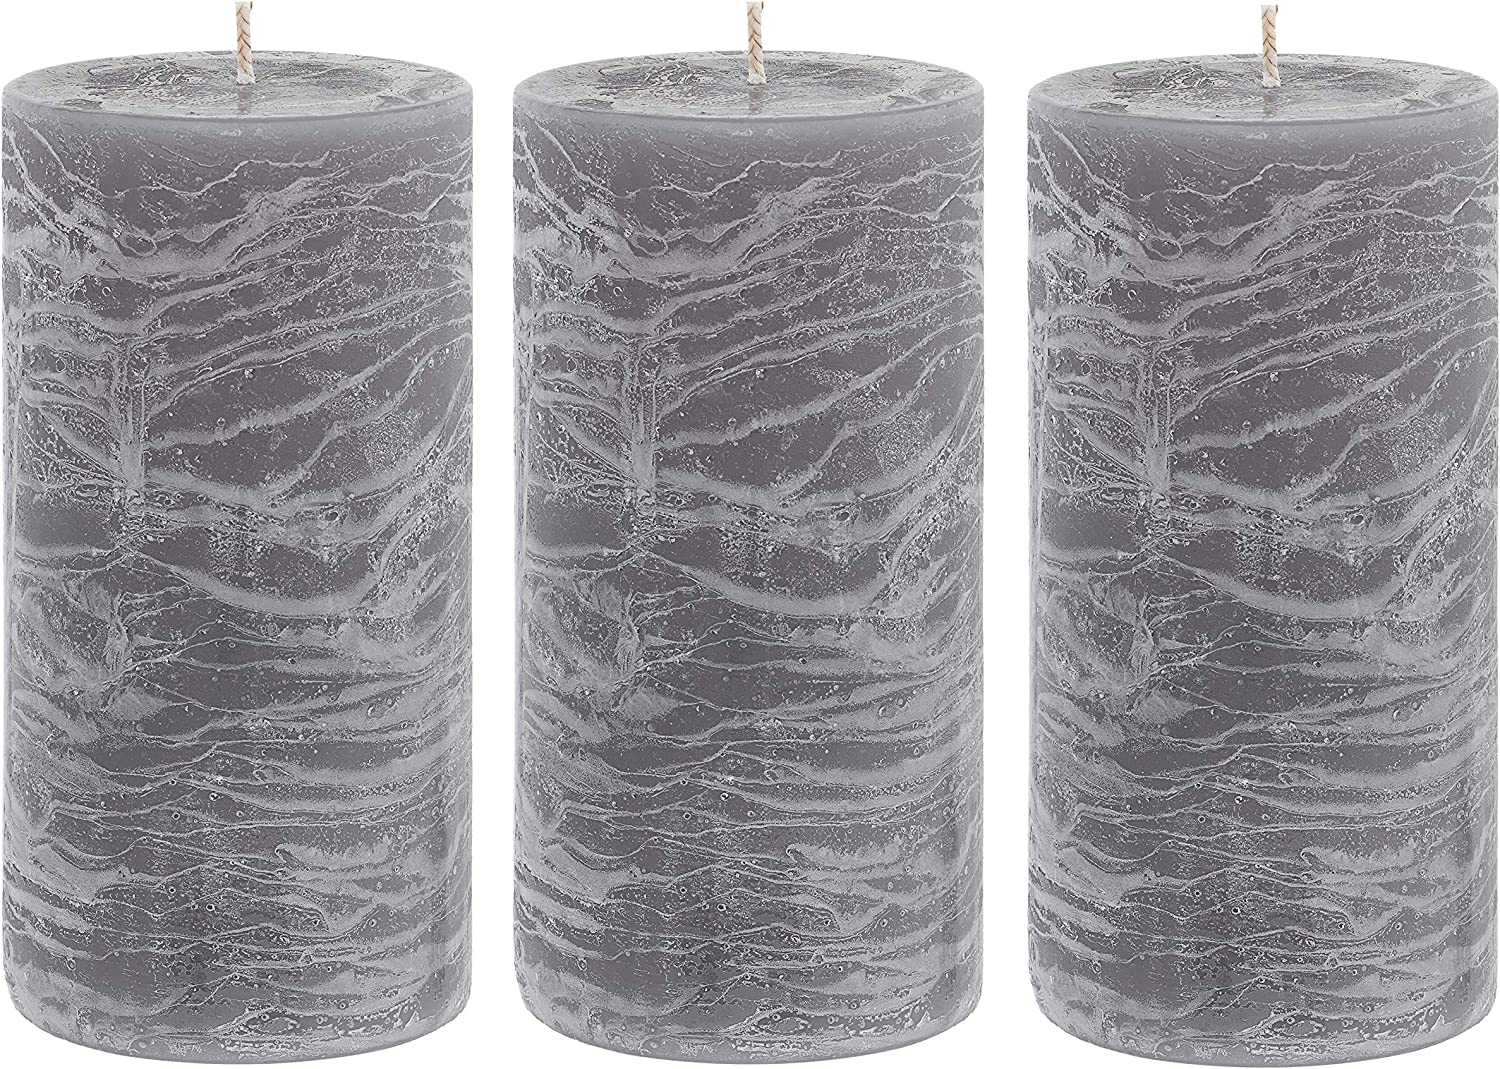 Unscented 3x6 Tall Pillar Candles – Set of 3 Hand Poured Wax Candles | Smokeless, Clean Burning Décor for Home, Weddings, Church, Events | Gray